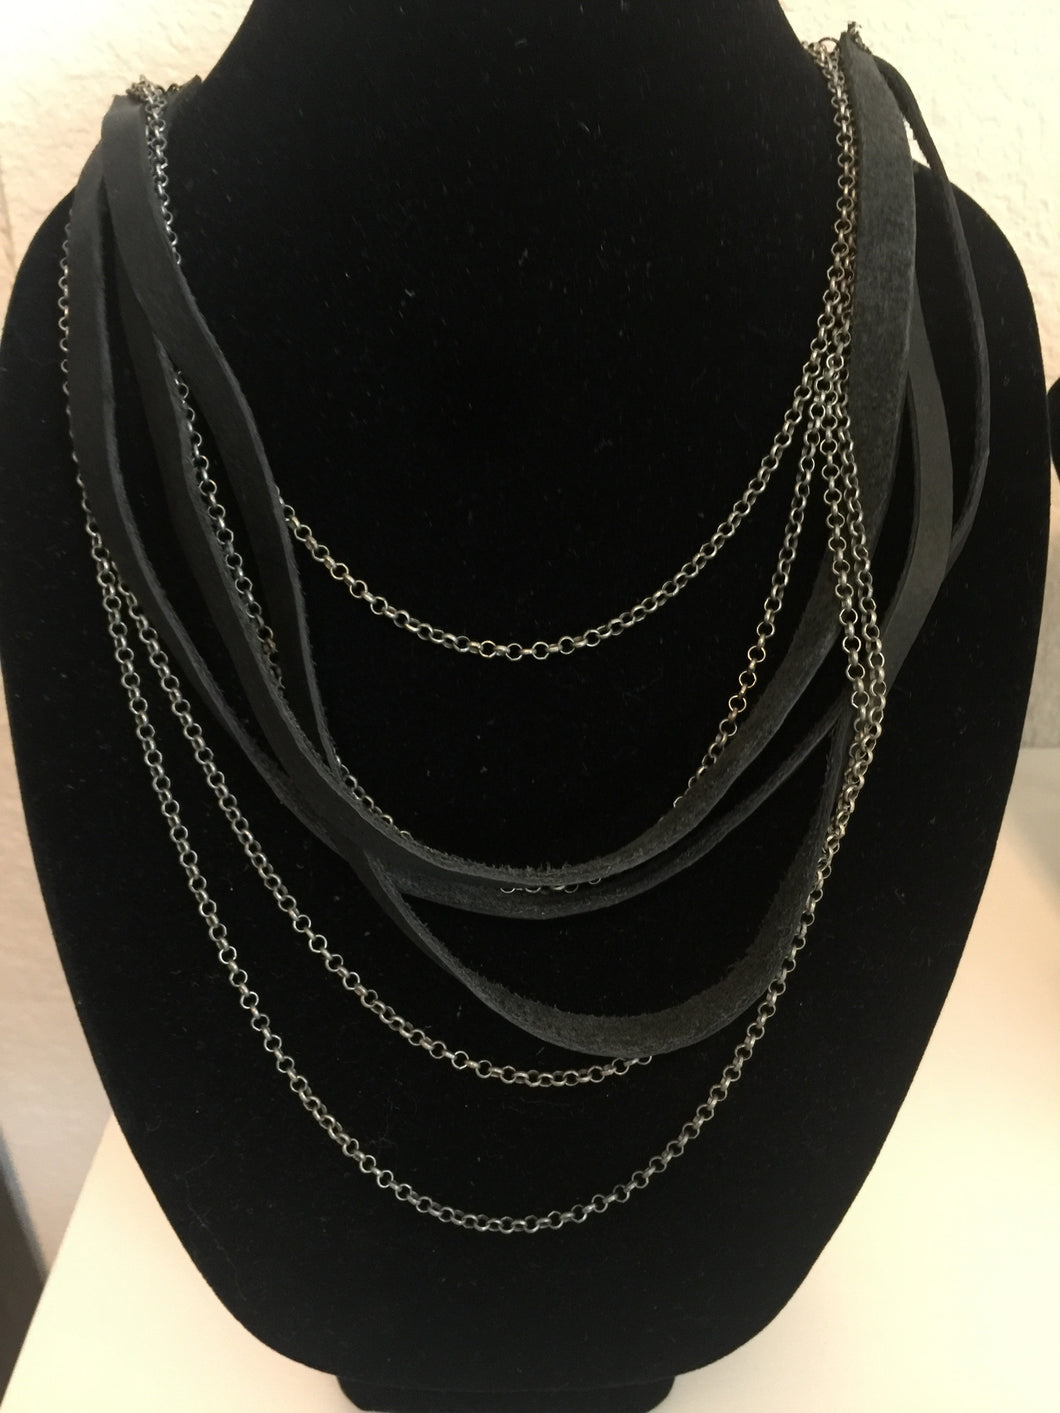 Layered chain and leather necklace